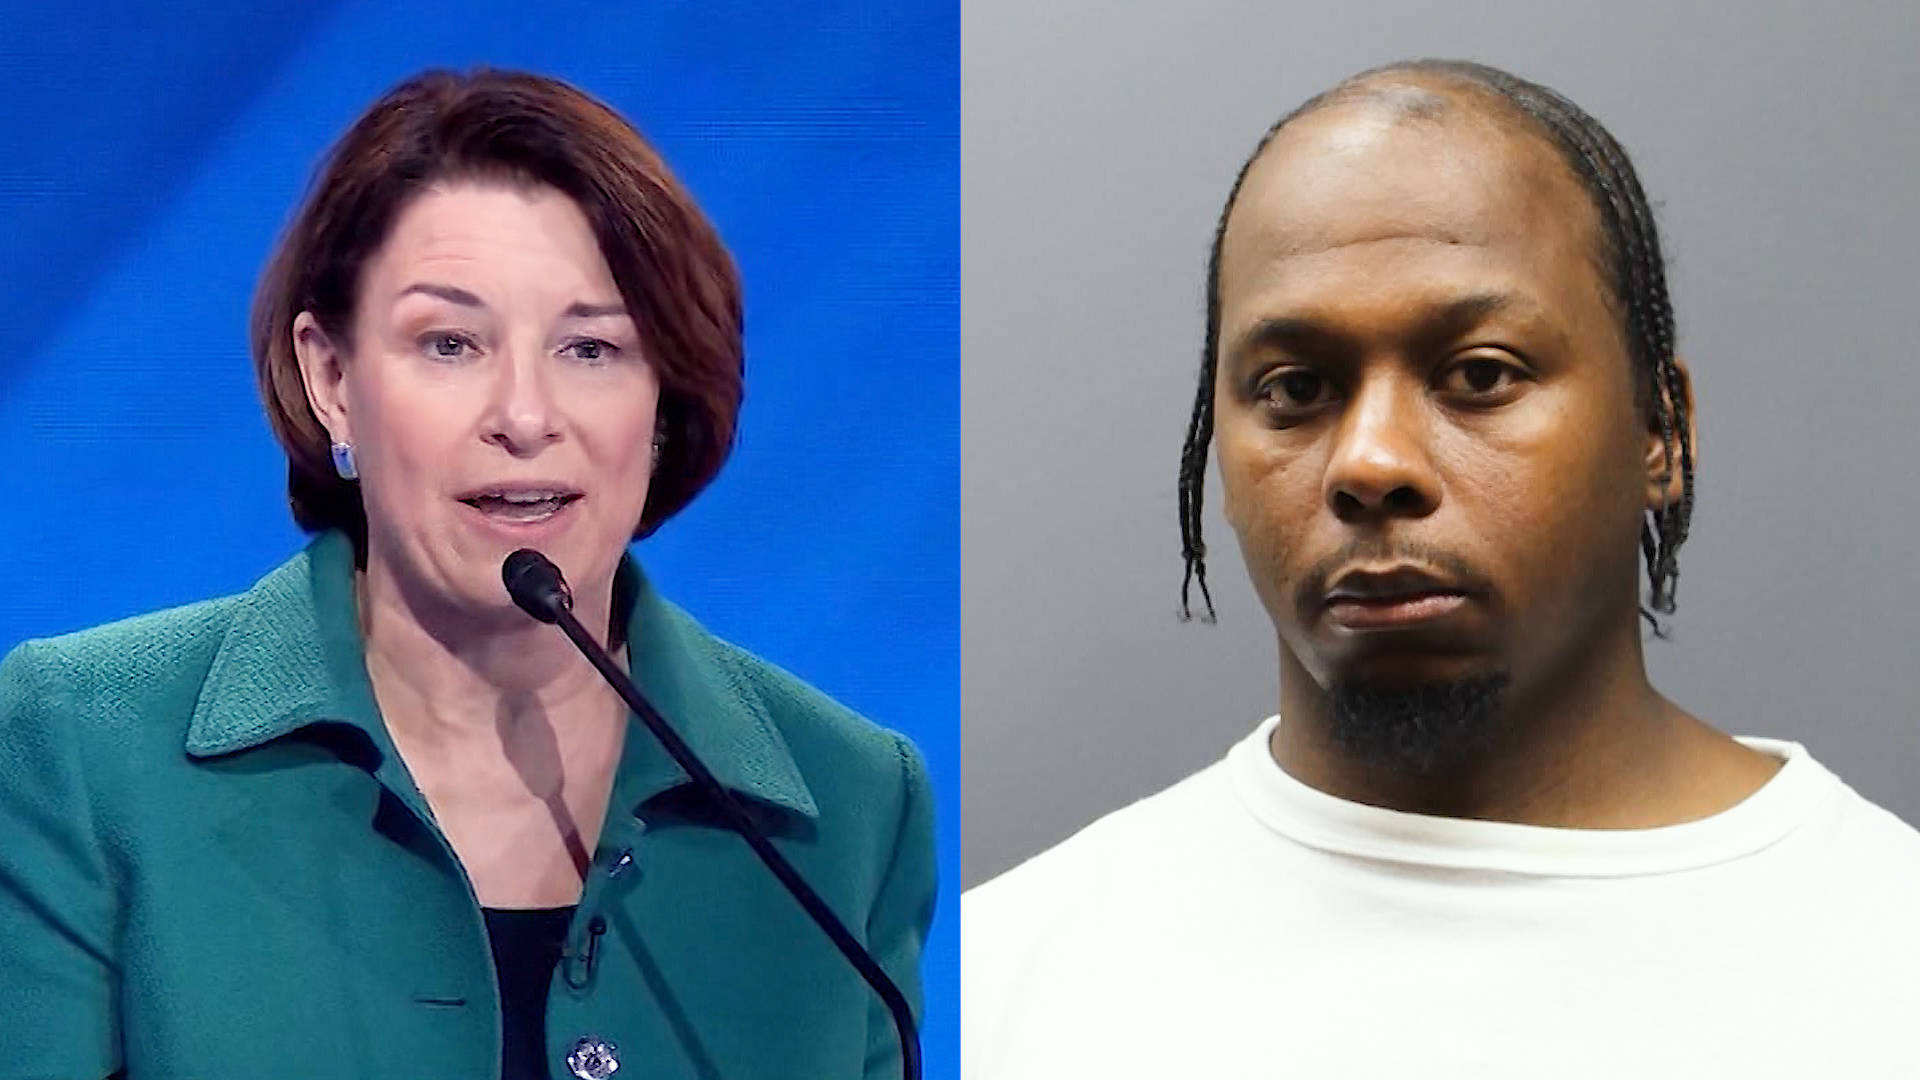 Did Amy Klobuchar Send an Innocent Teenager to Life In Prison? Questions Mount Over Her Record as DA